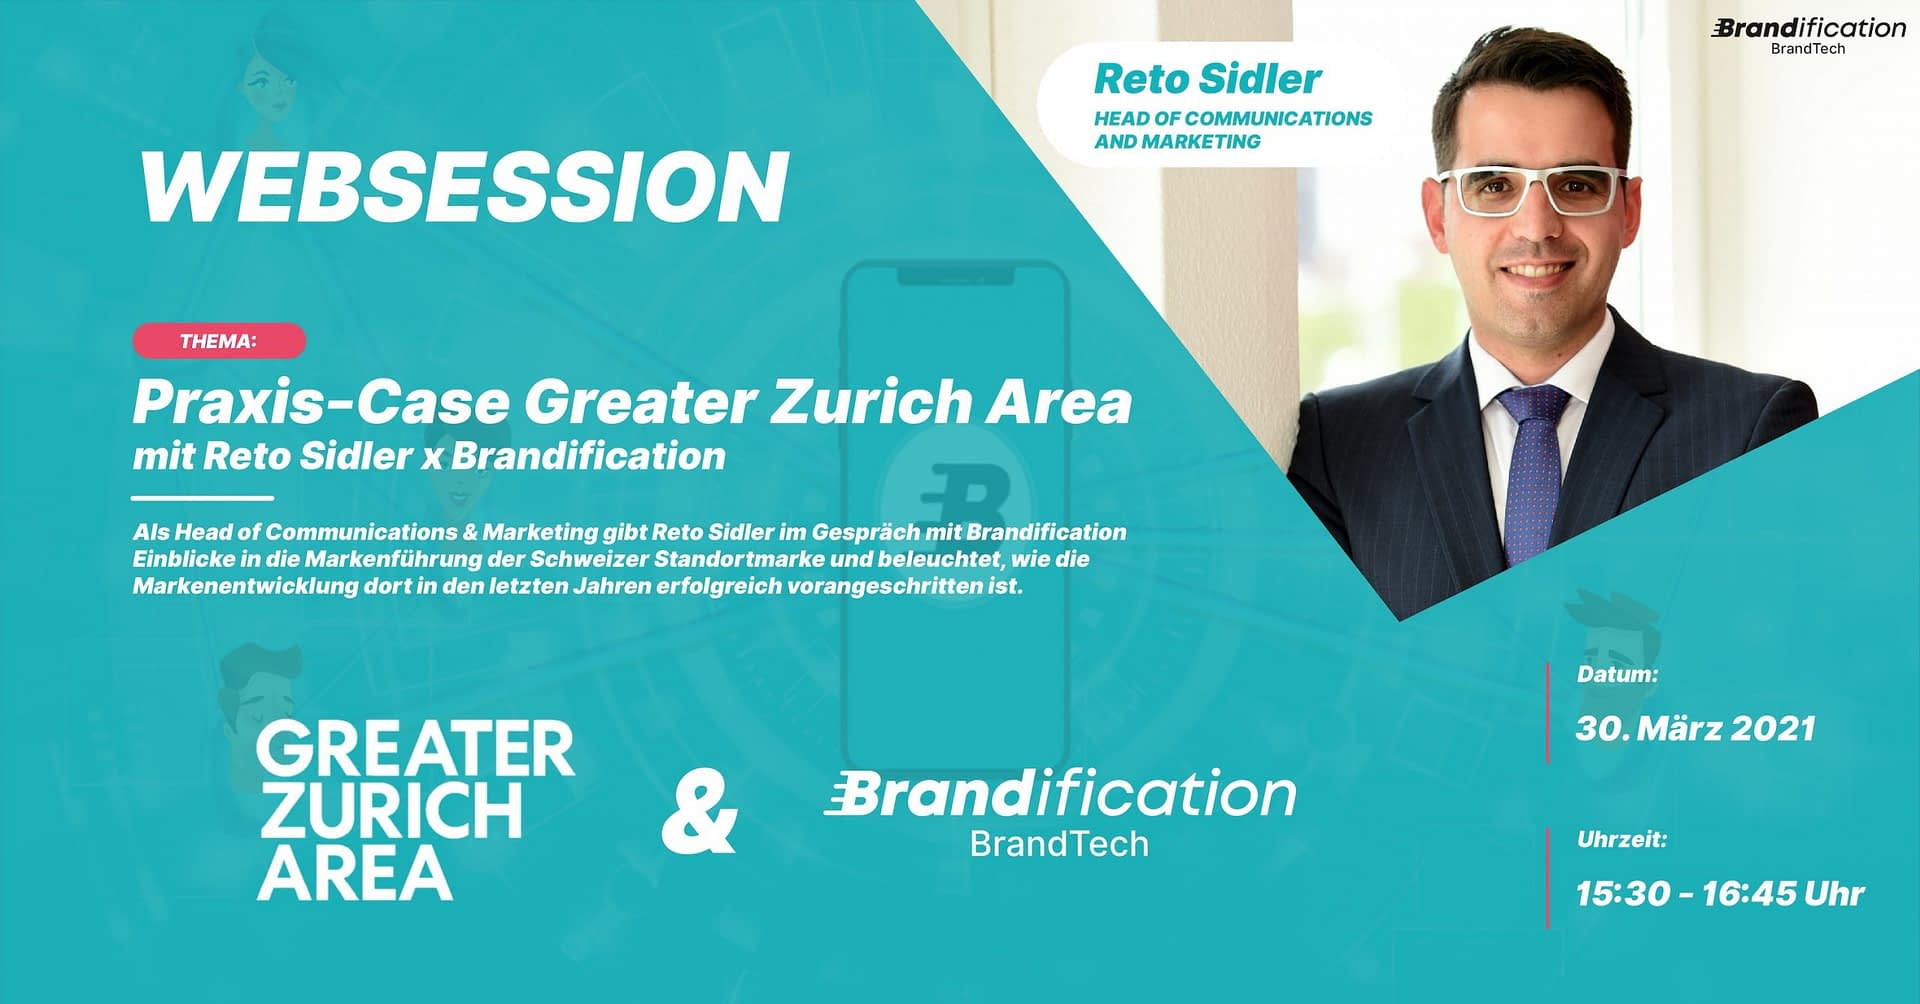 Web session event with Reto Sidler and Brandification